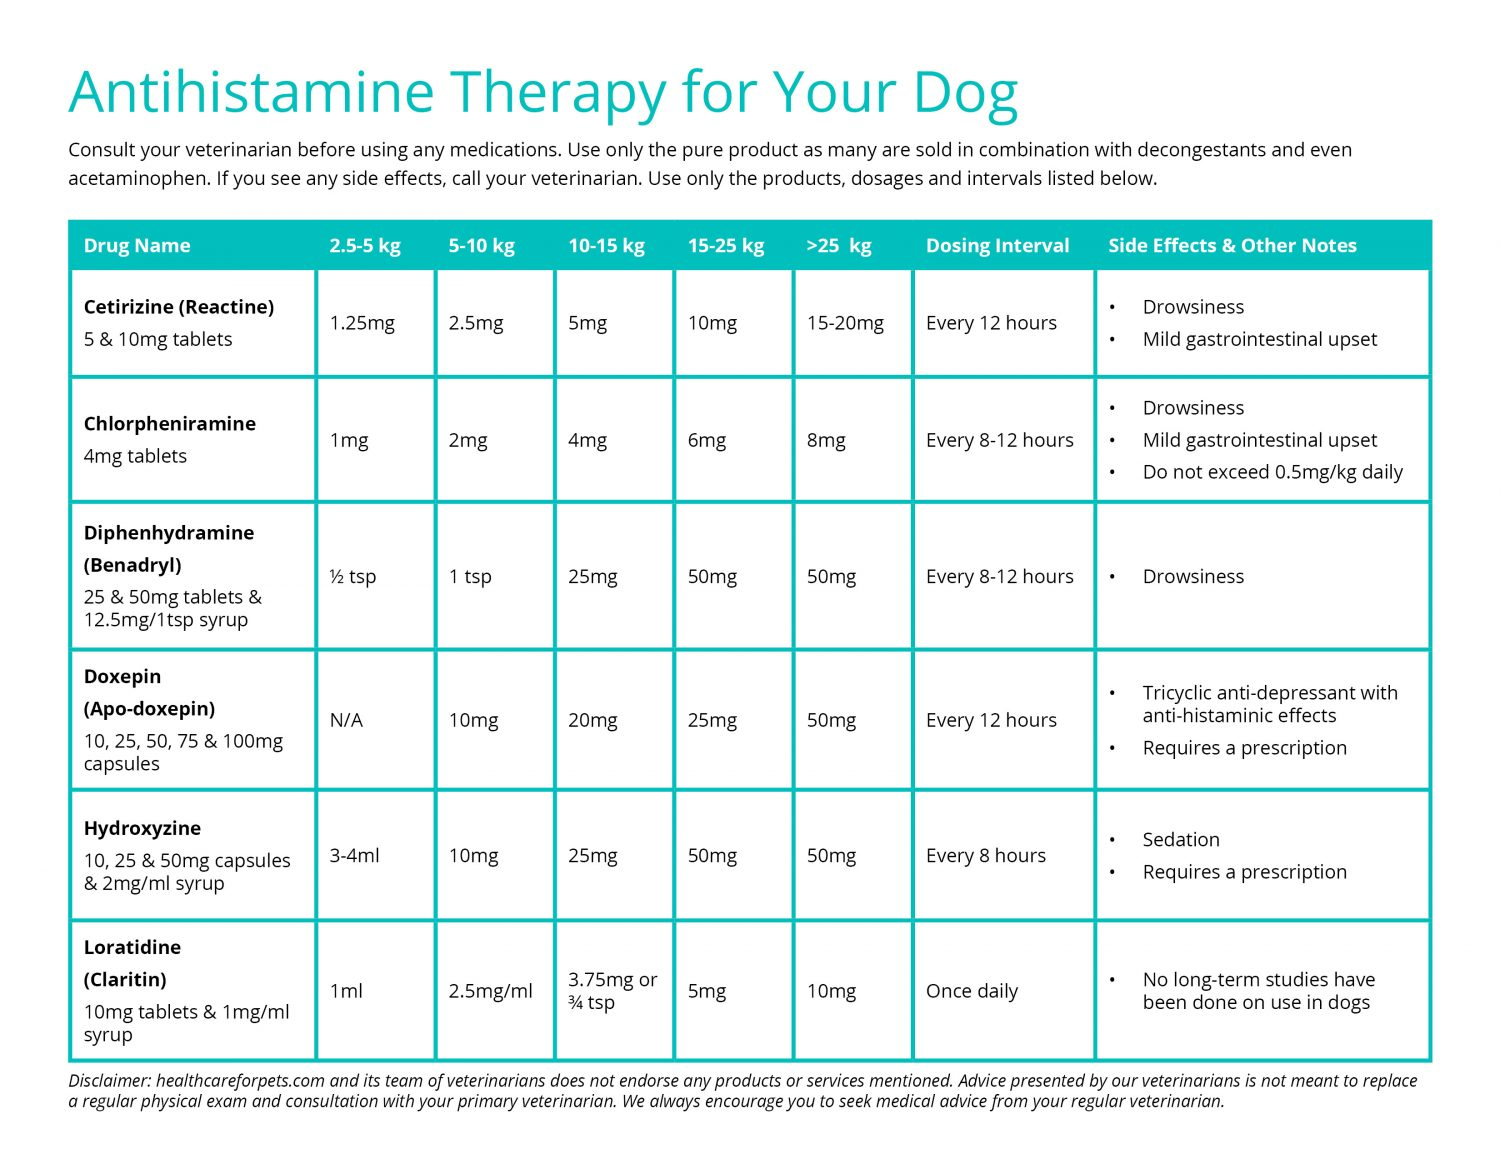 Antihistamine Therapy Chart for Dogs | Healthcare for Pets